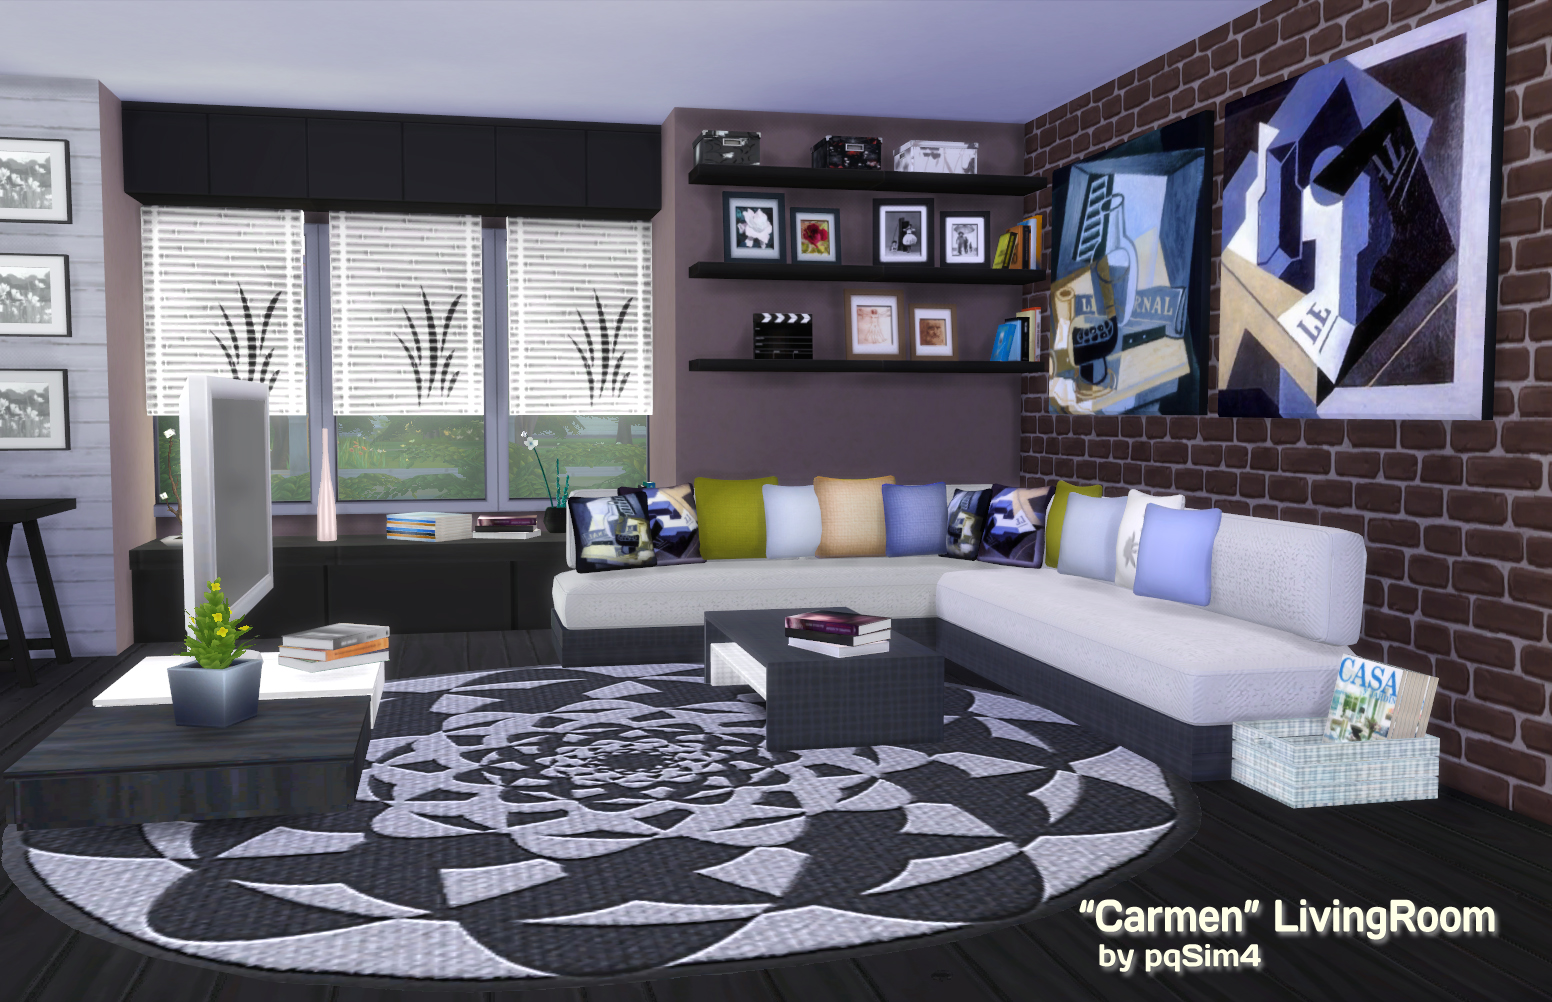 "Carmen"" Living Room By PQSIMS4"